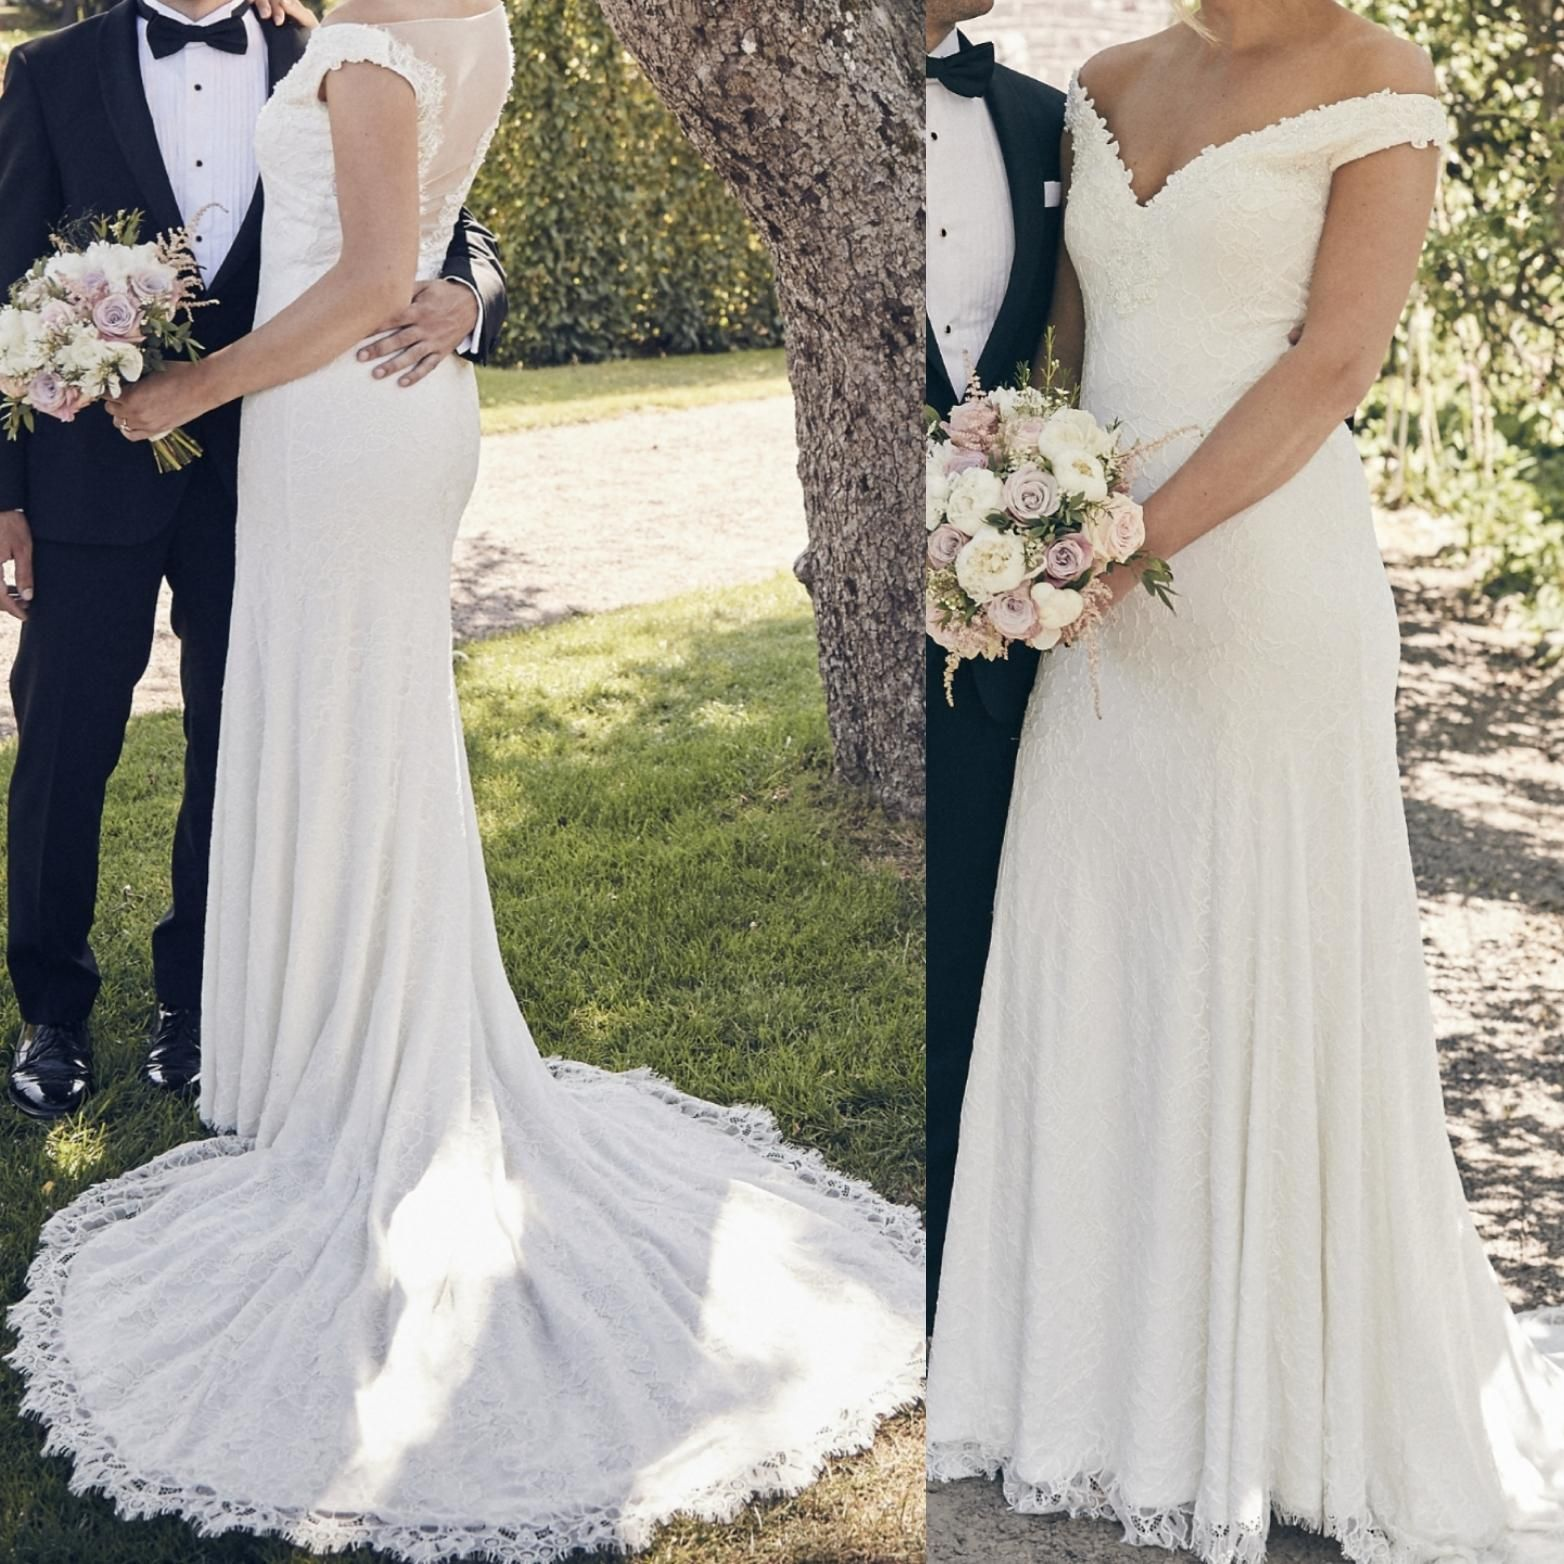 Ridiculous wedding dresses  Self Drafted My wife and her mother created her wedding dress Took